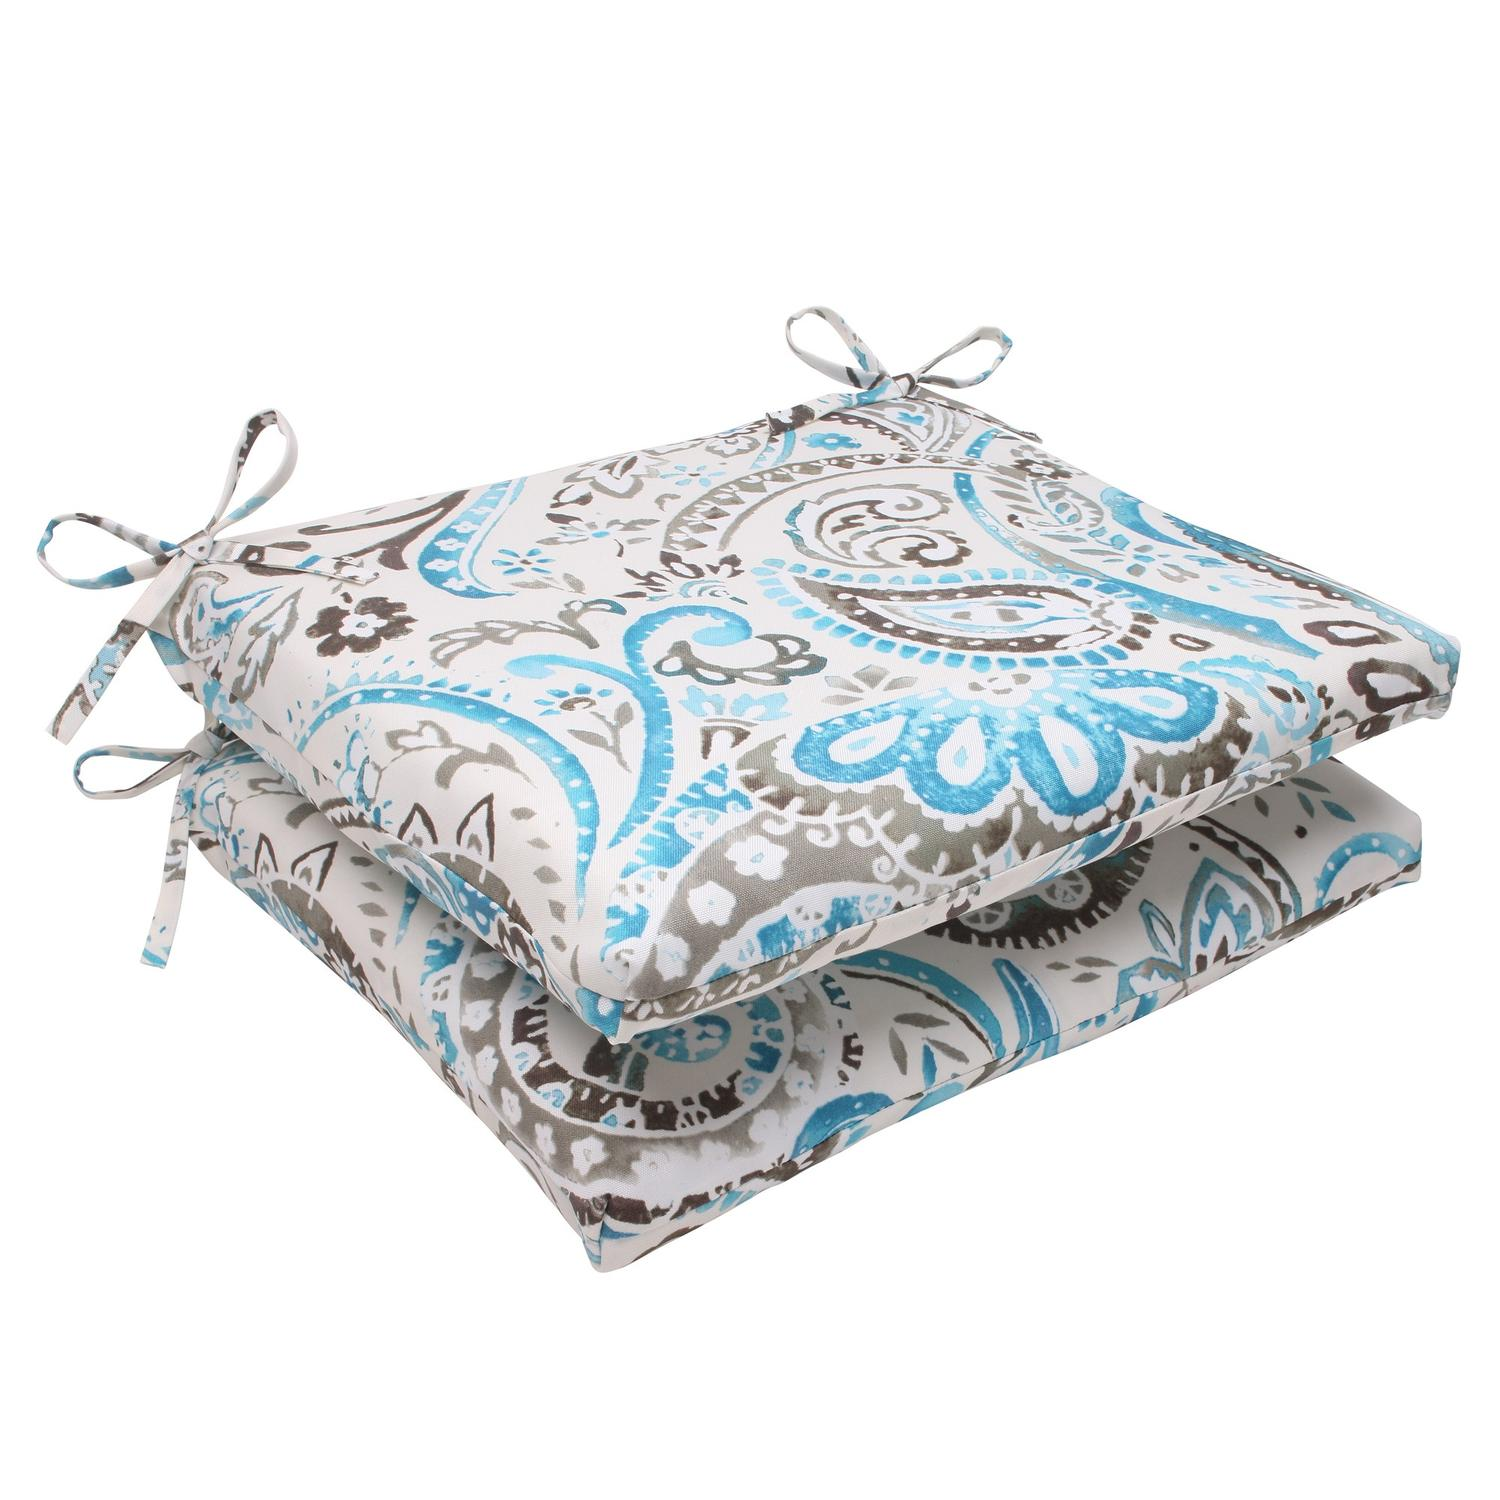 Set of 2 Turquoise & Gray Paisley Swirl Outdoor Square Chair Cushions 18.5